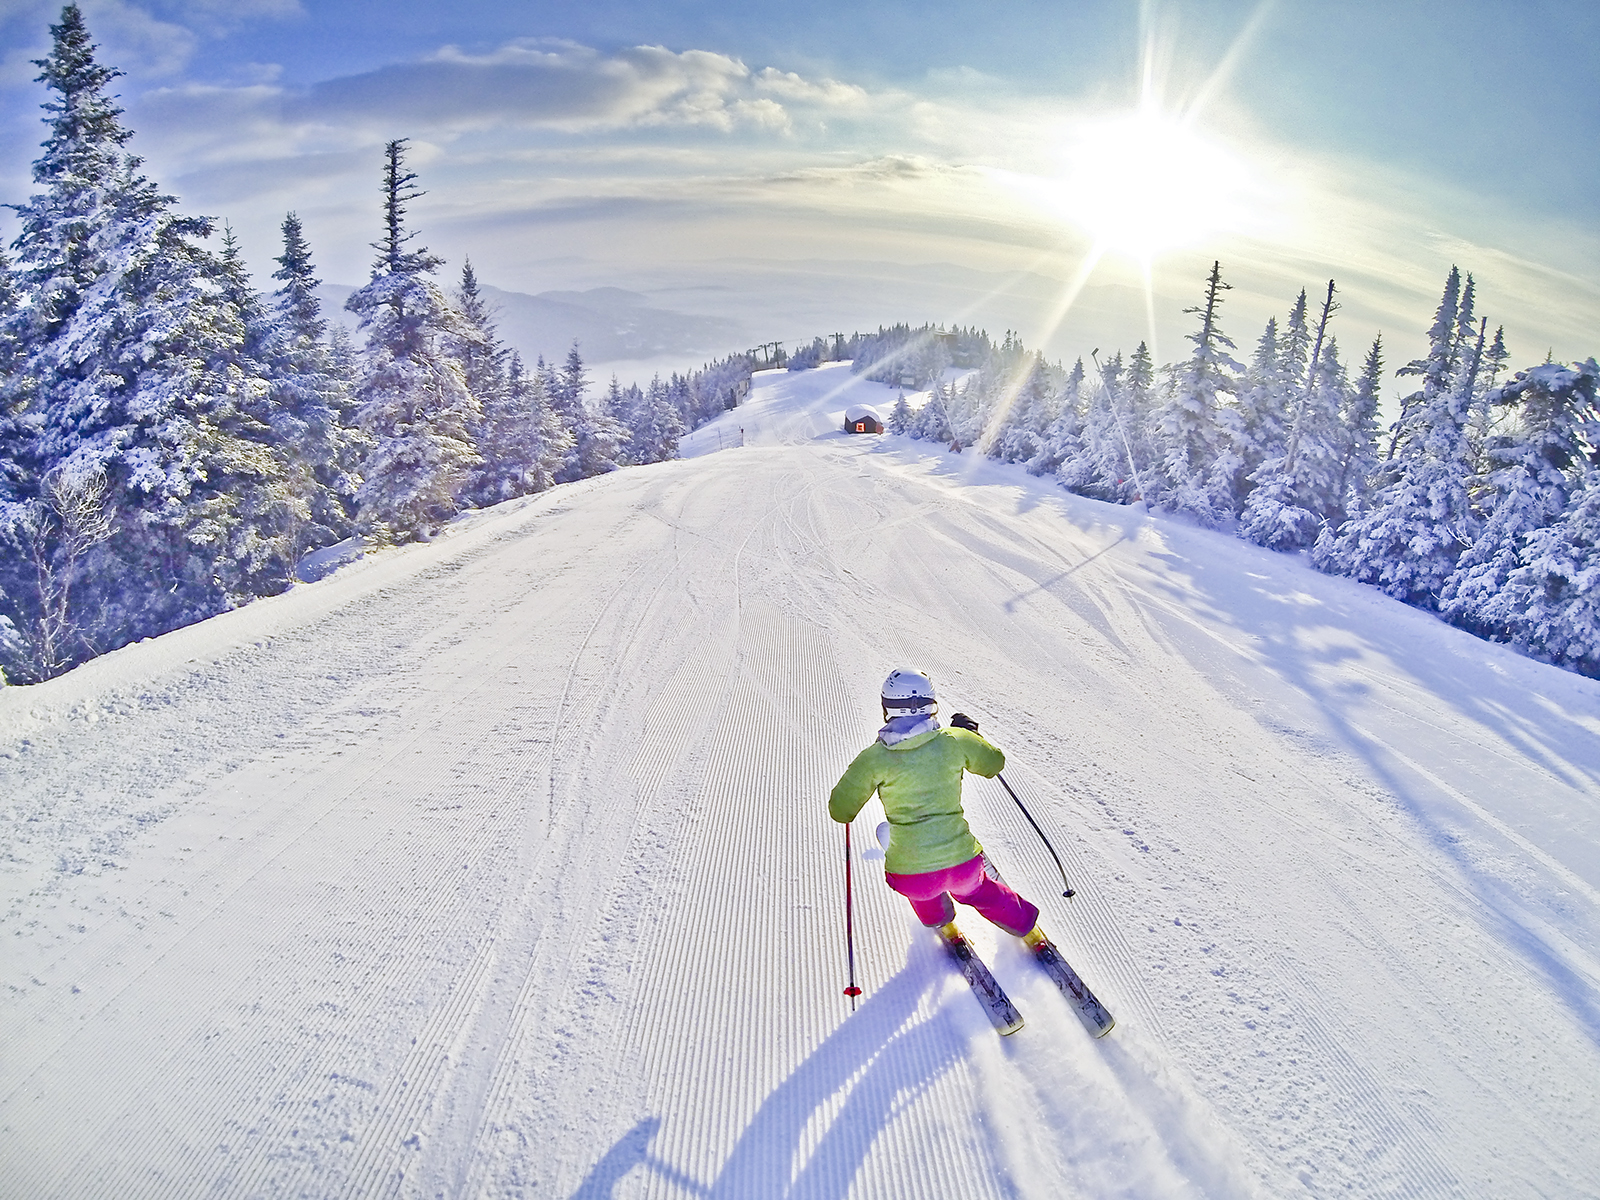 Downhill Skiing in Stowe, VT